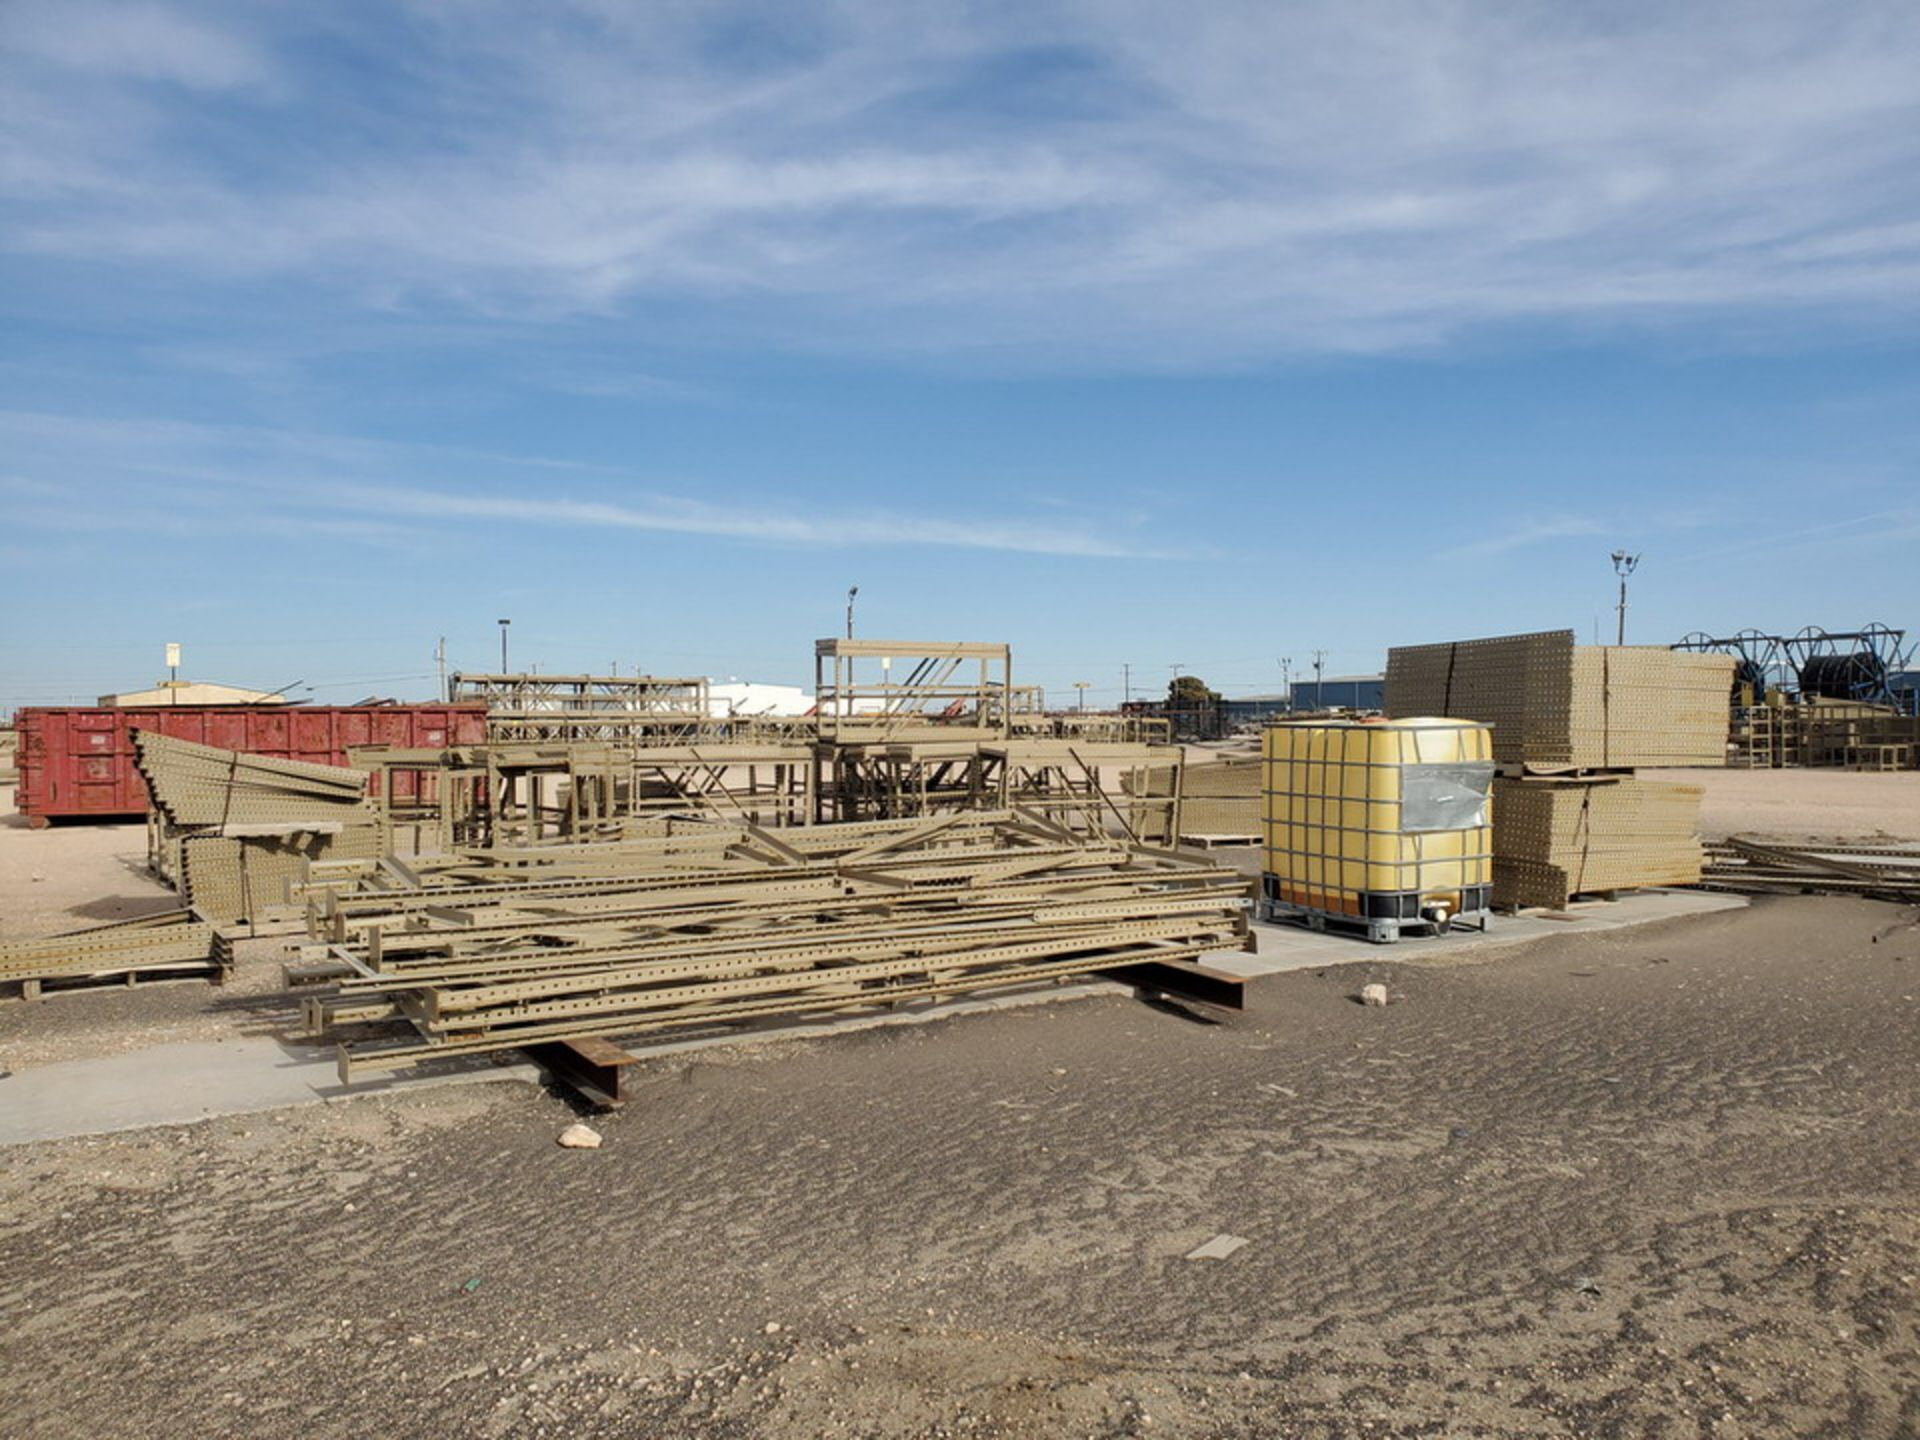 Disassembled Catwalk Sections - Image 11 of 20